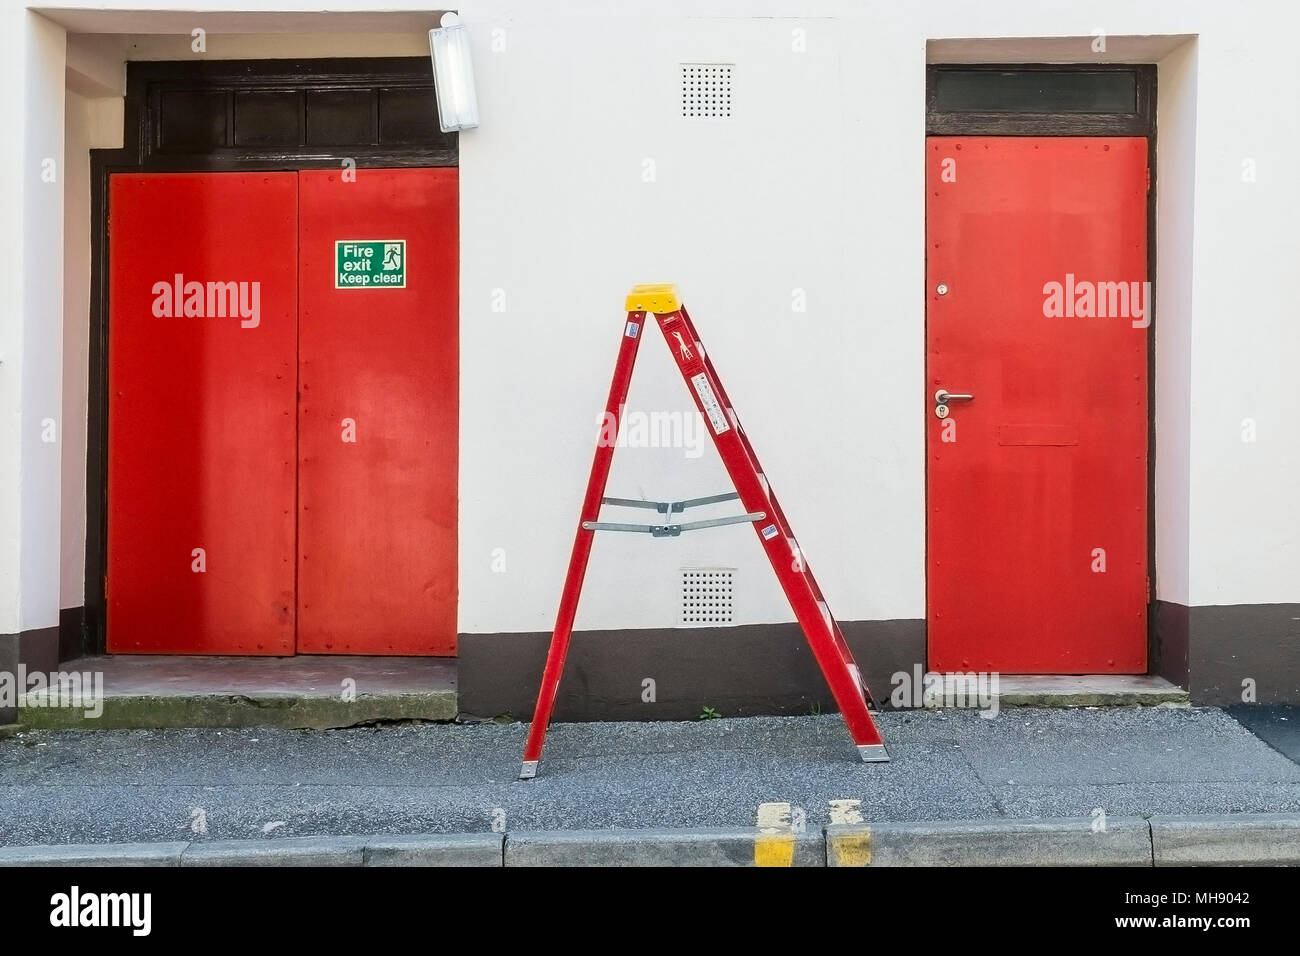 A red step ladder in between two red doors. - Stock Image